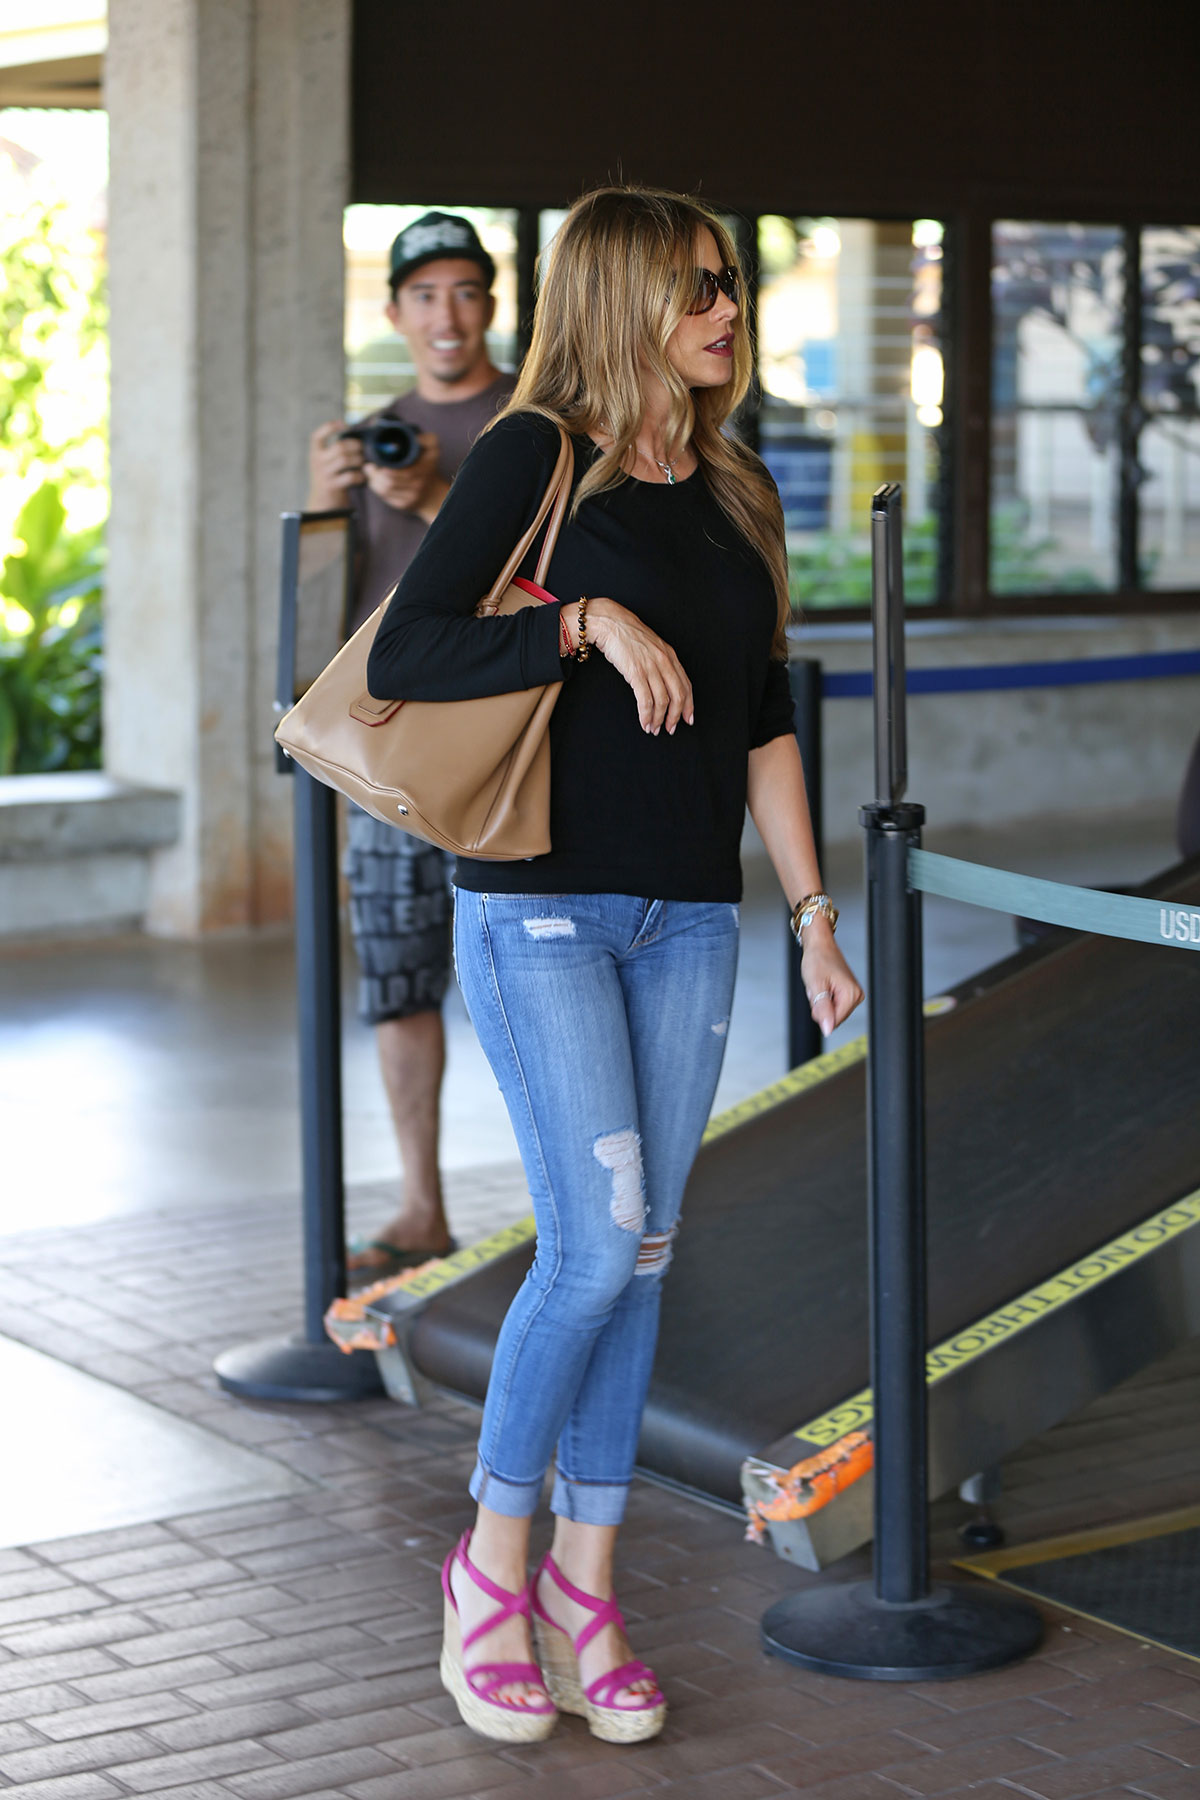 41901db62b0f4 SOFIA VERGARA in Ripped Jeans at the Airport in Hawaii. More pics »